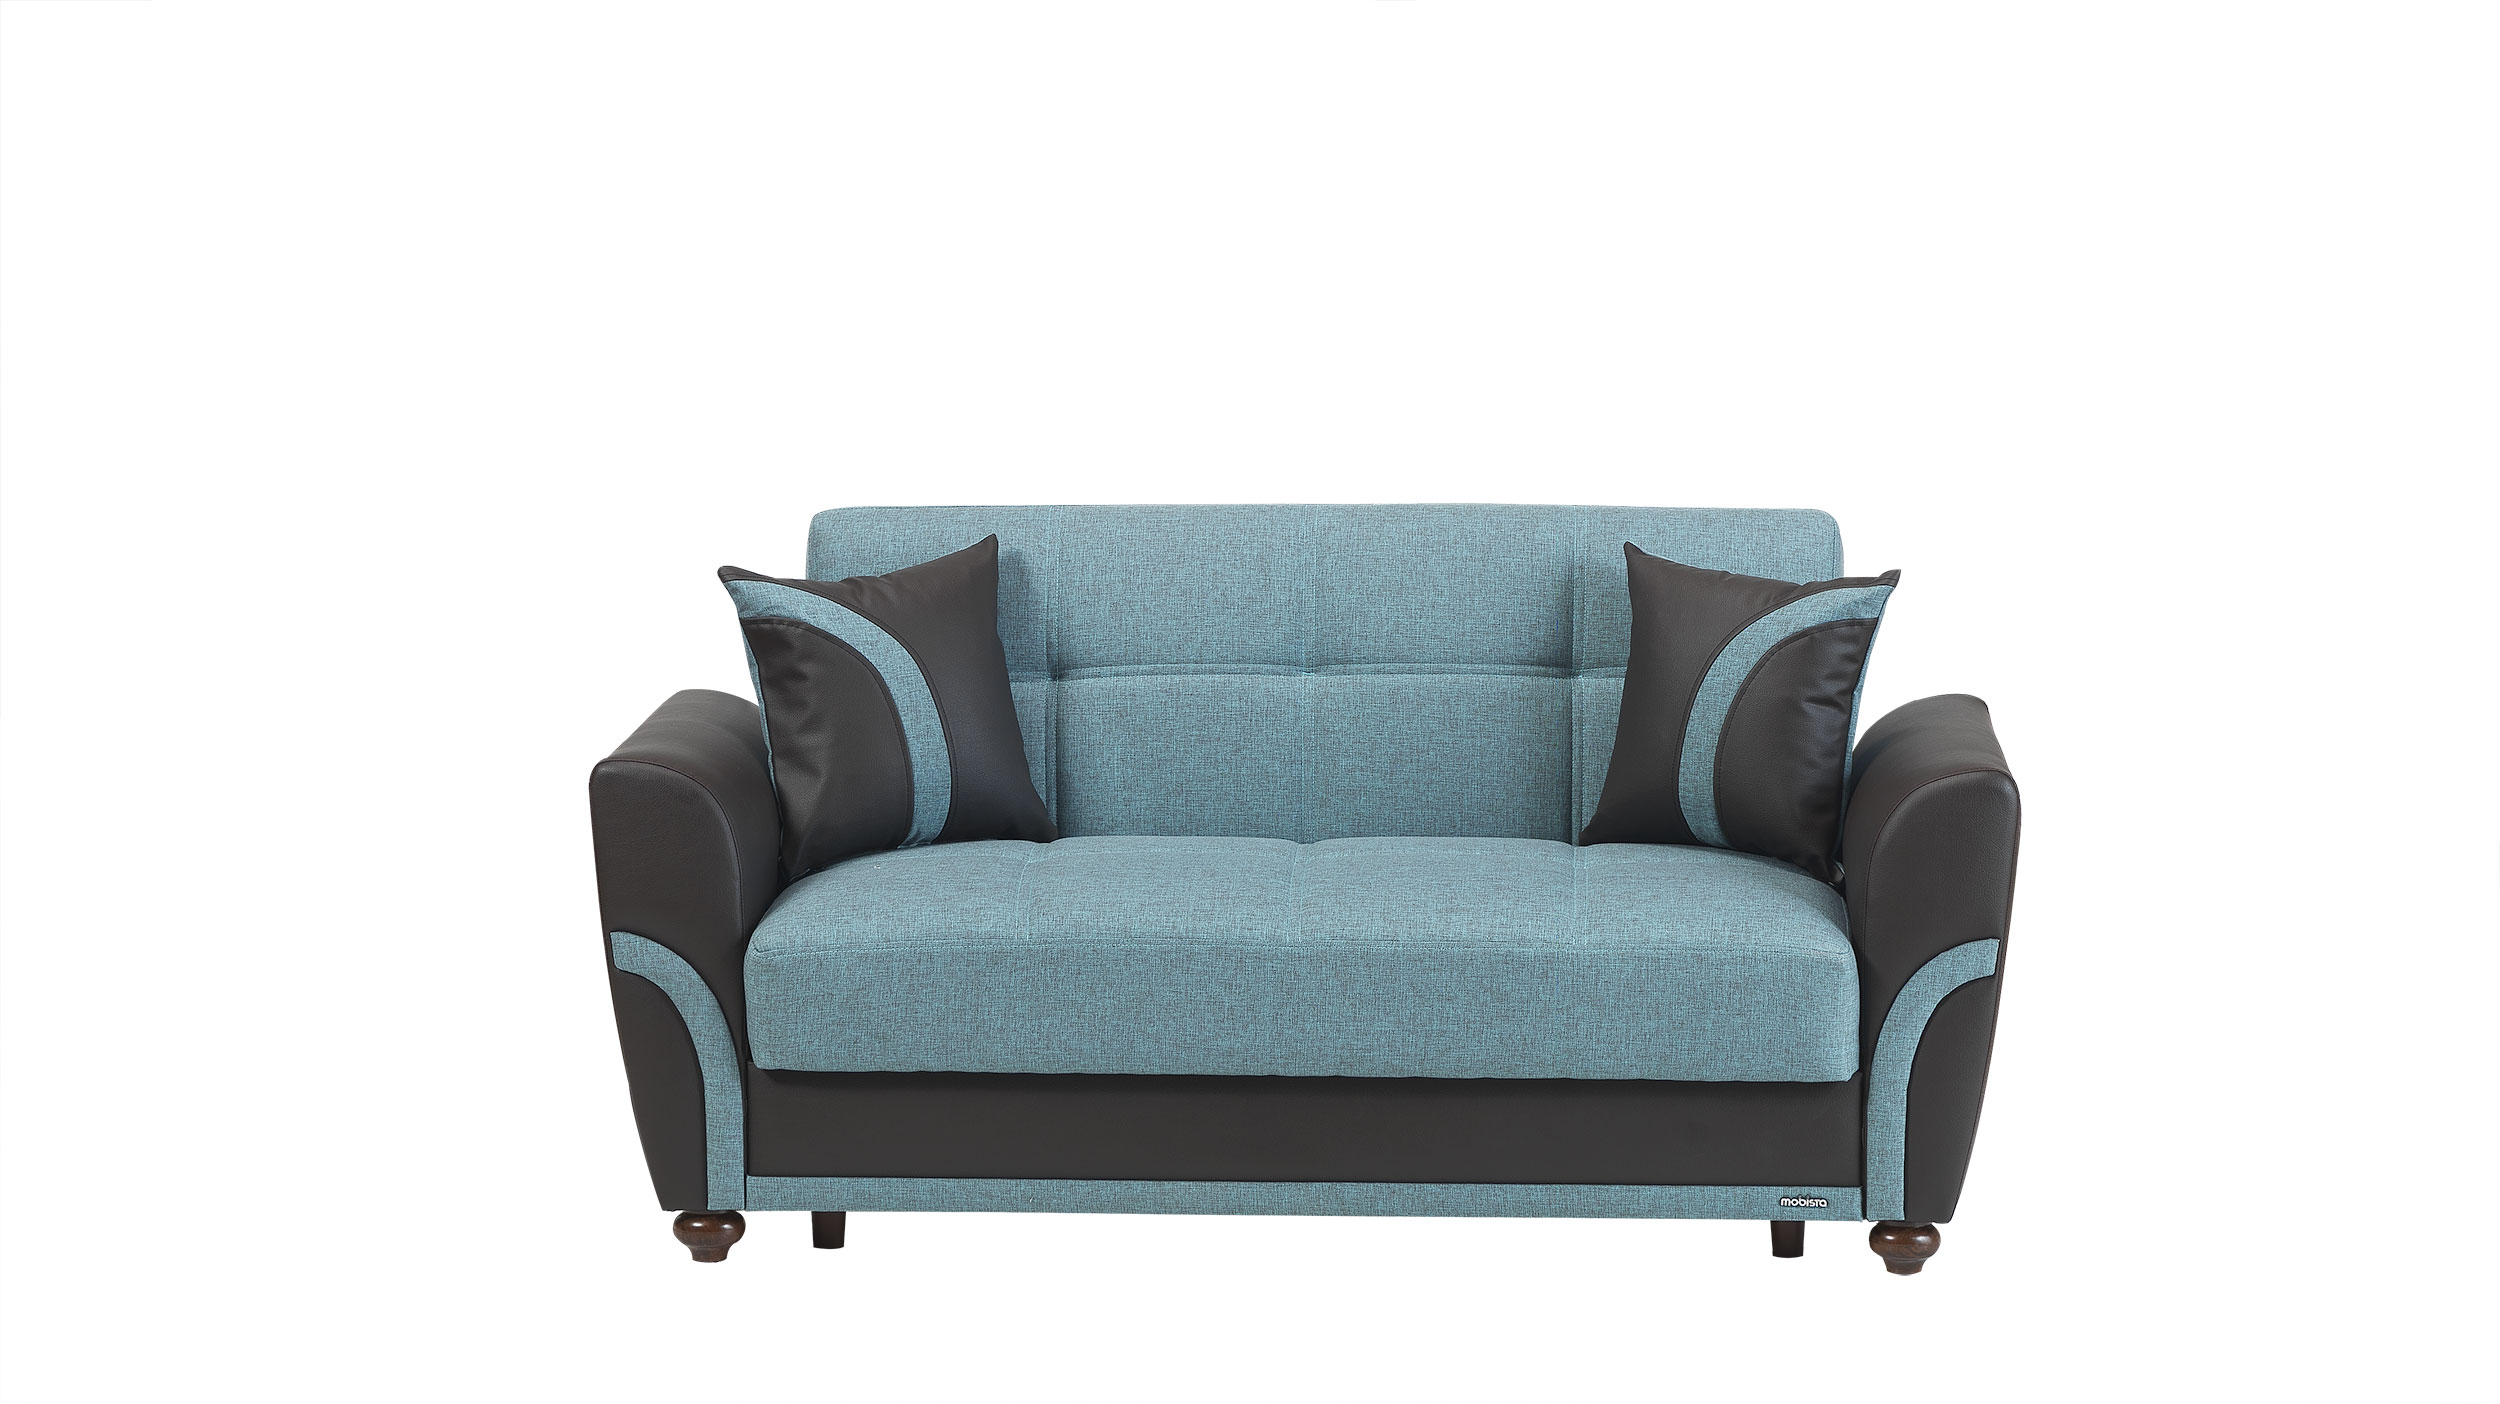 Star City Turquoise Loveseat Bed By Mobista